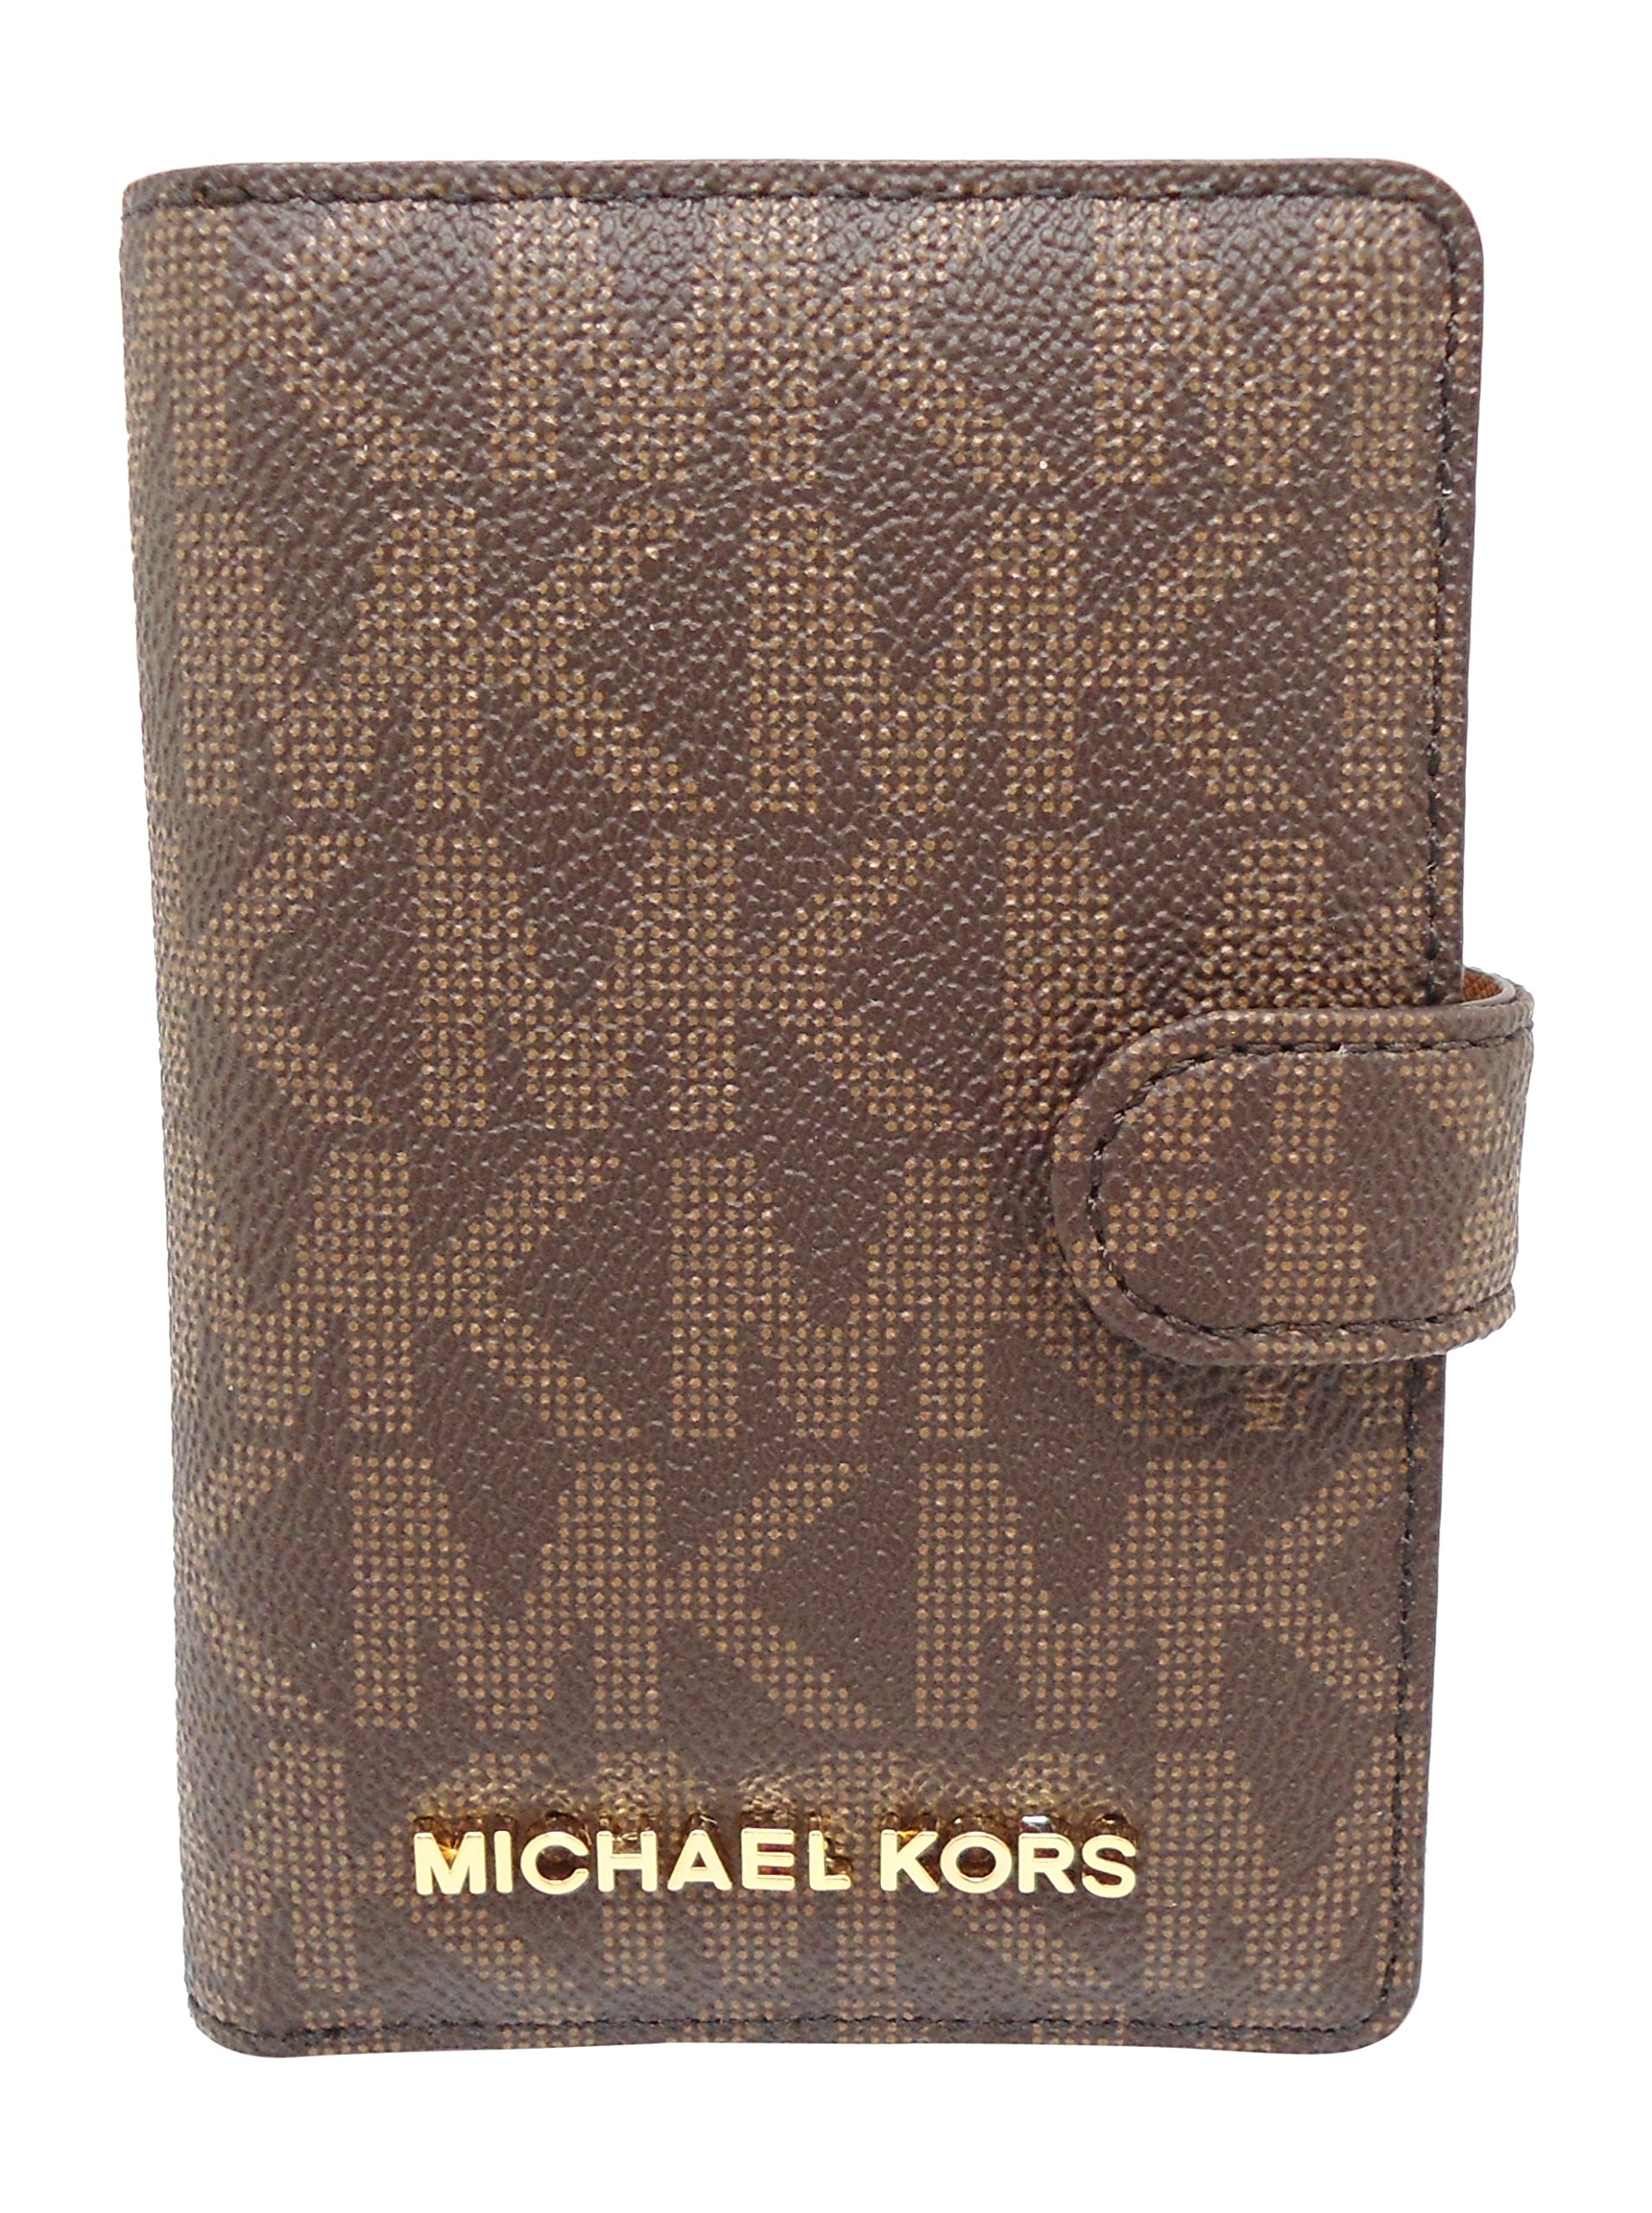 Michael Kors Jet Set Travel Passport Case Wallet Brown/Acorn 0089 by Michael Kors